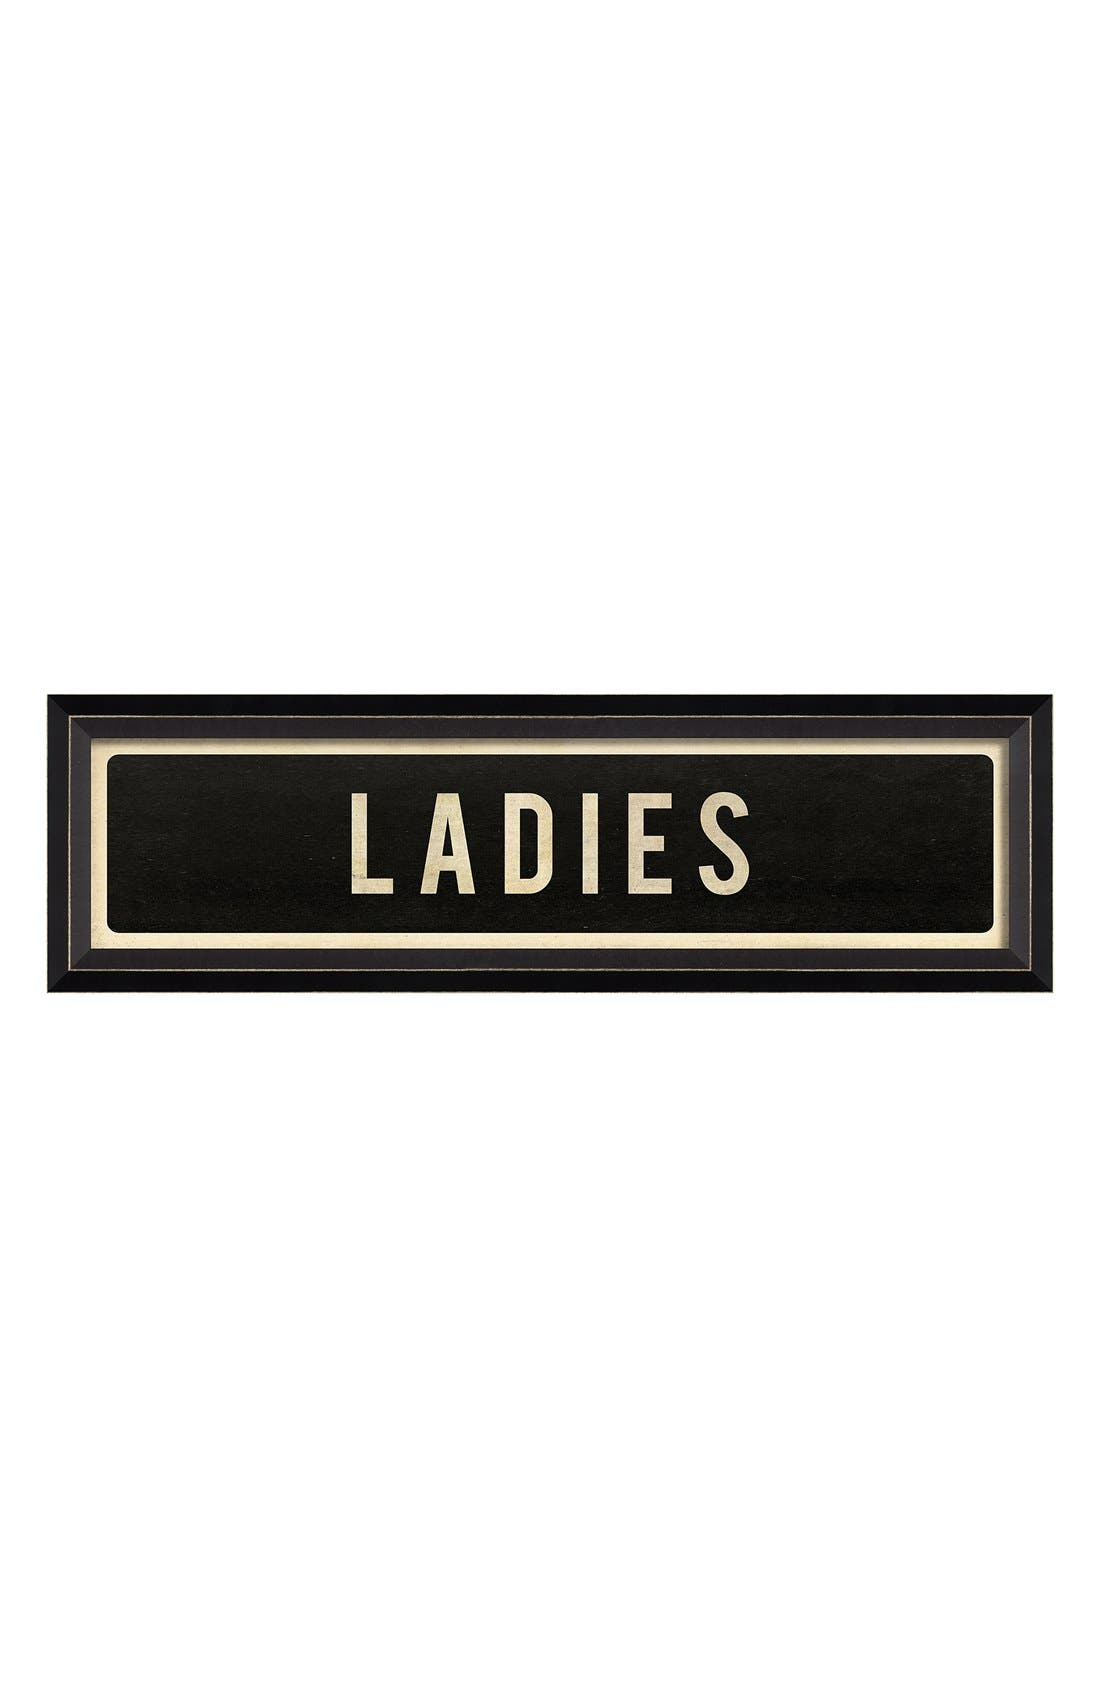 Alternate Image 1 Selected - Spicher and Company 'Ladies' Vintage Look Sign Artwork